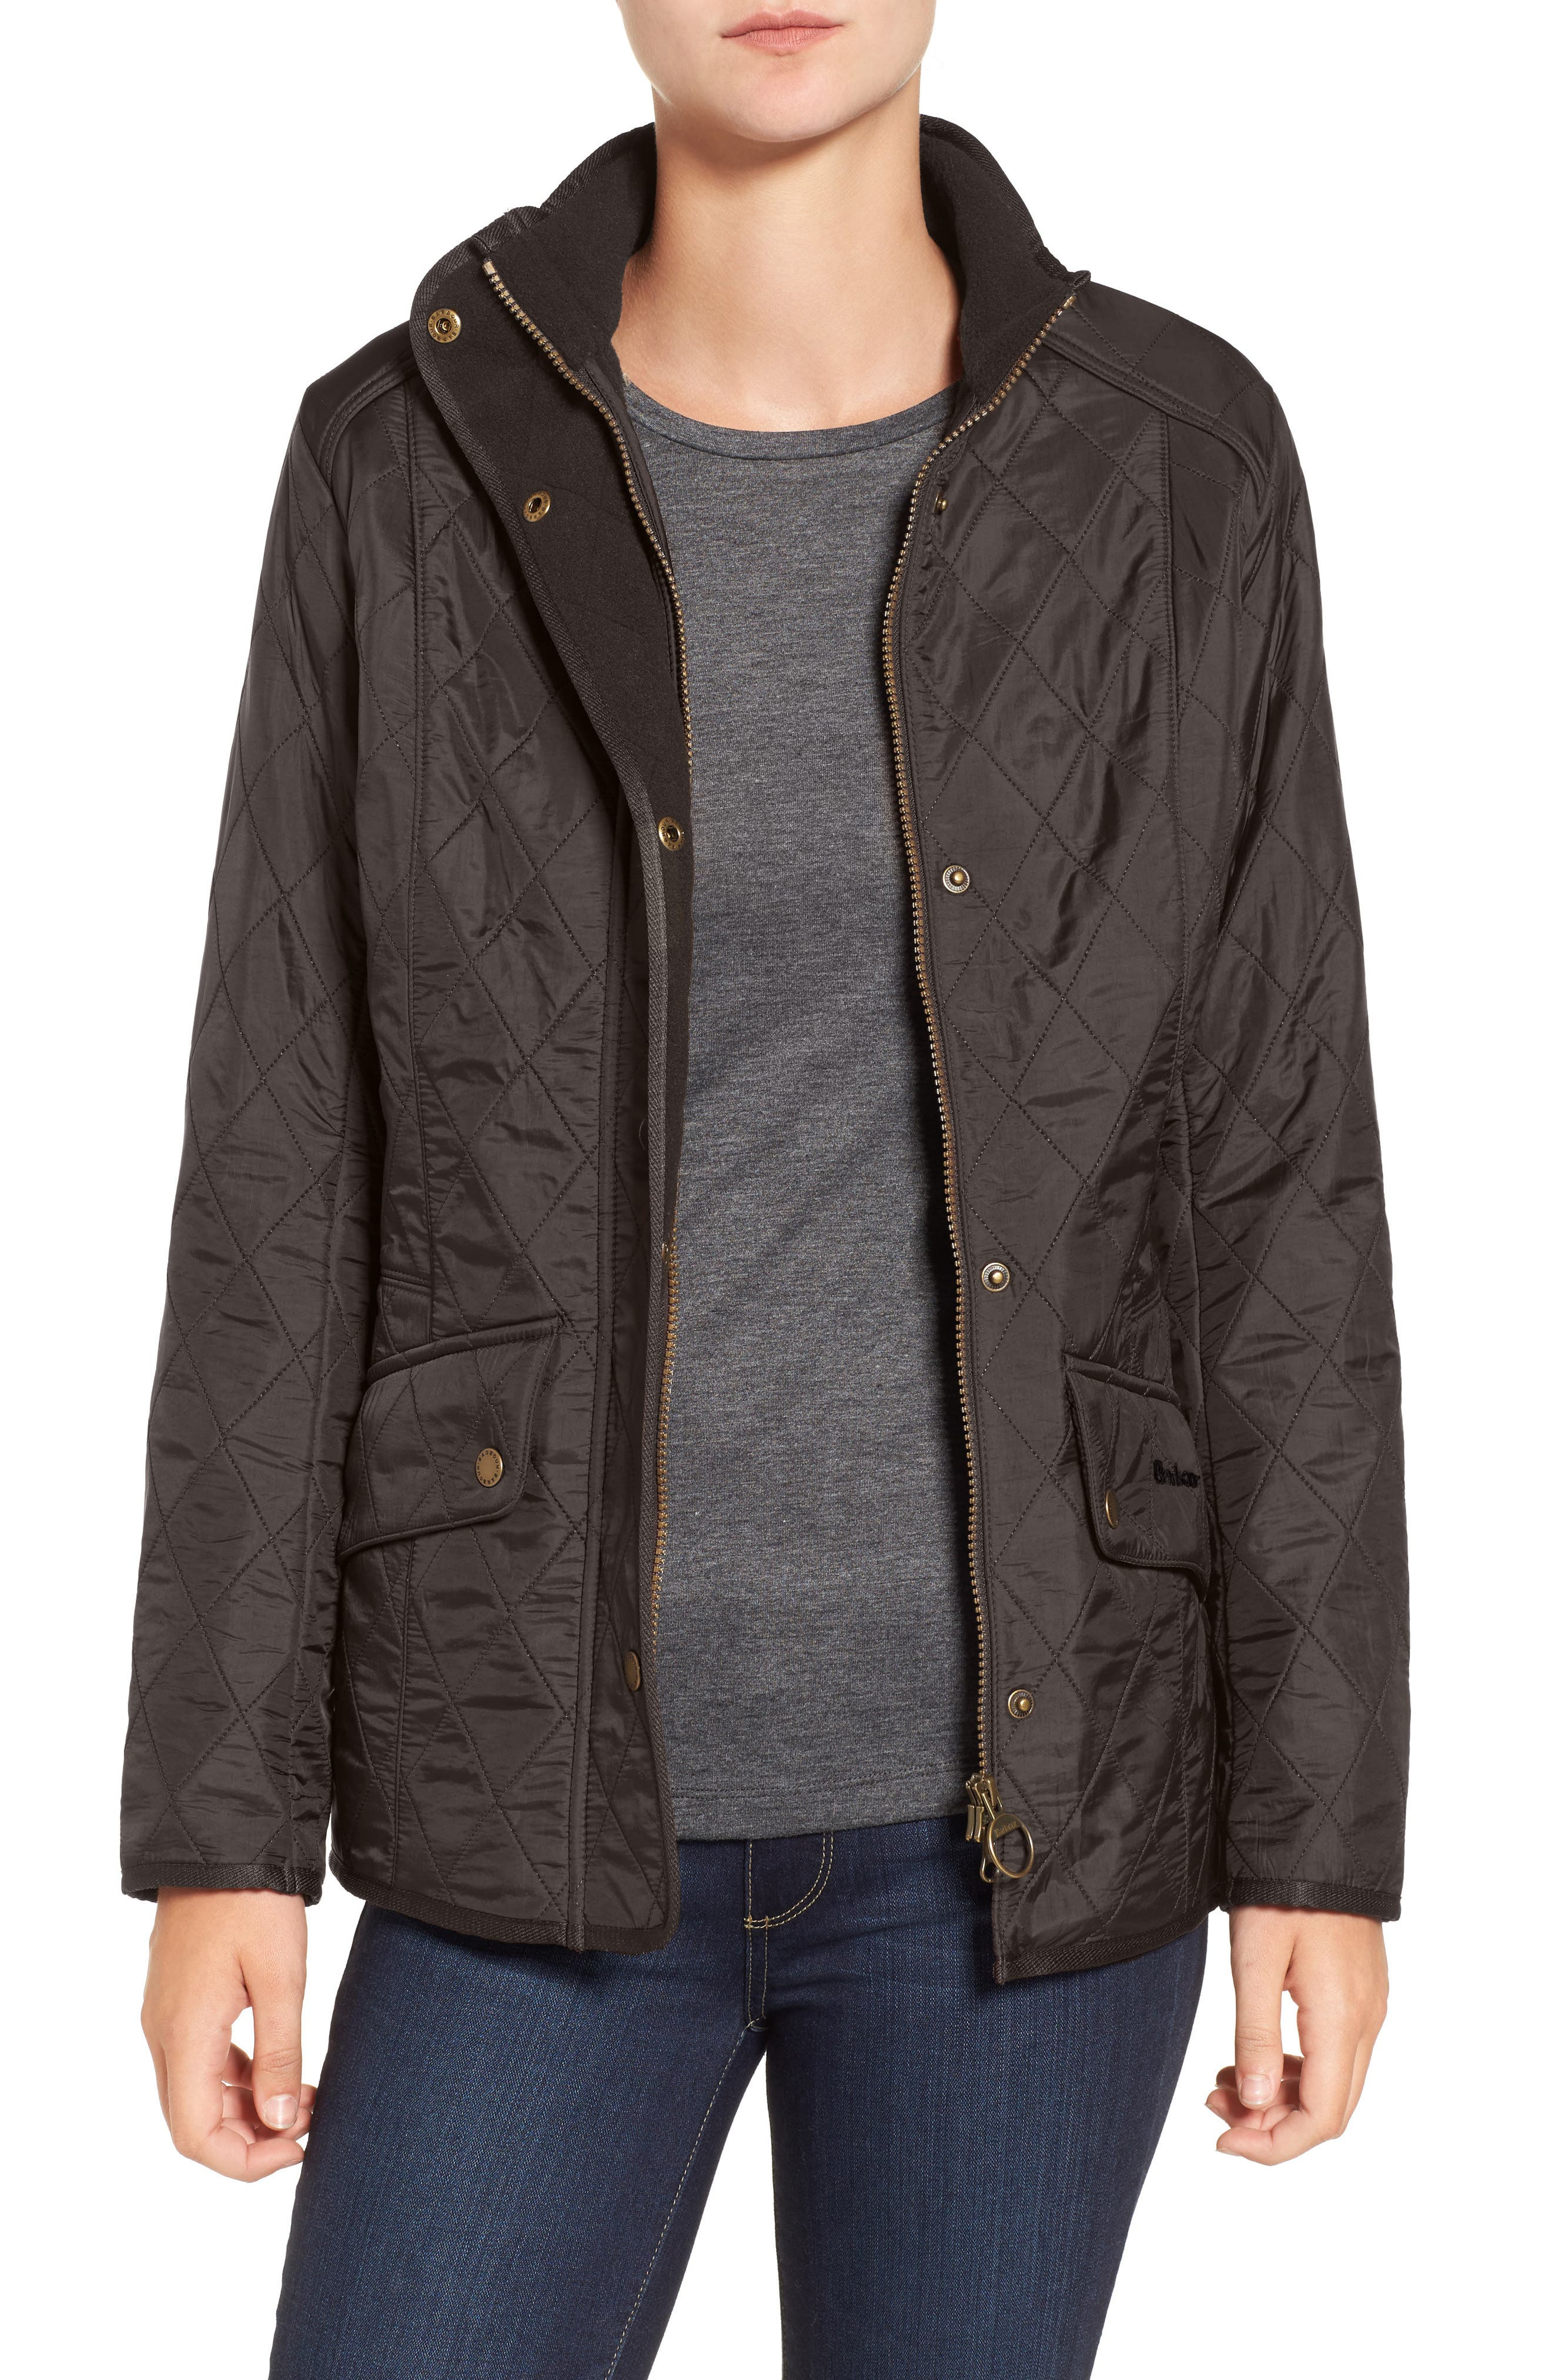 BARBOUR, 'Cavalry' Quilted Jacket, Alternate thumbnail 7, color, DARK OLIVE/ OLIVE